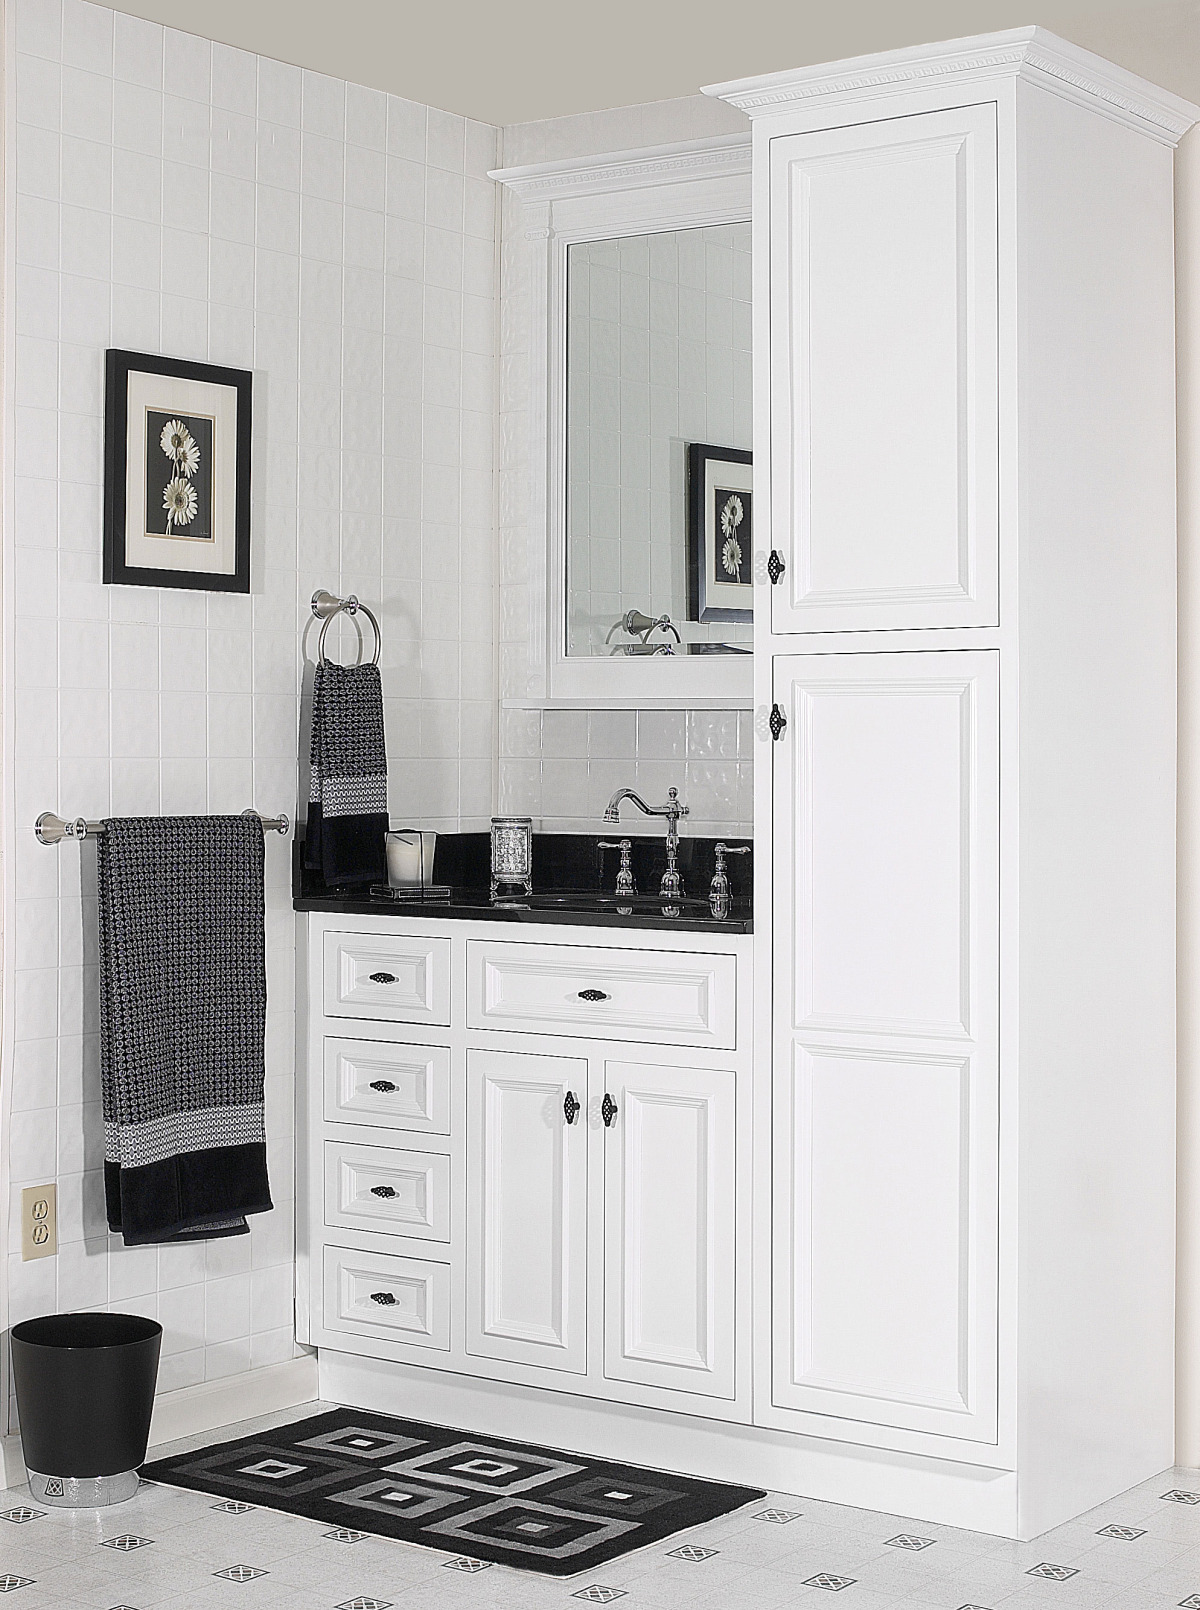 Bathroom vanity premium kitchen cabinets for Can you use kitchen cabinets in bathrooms